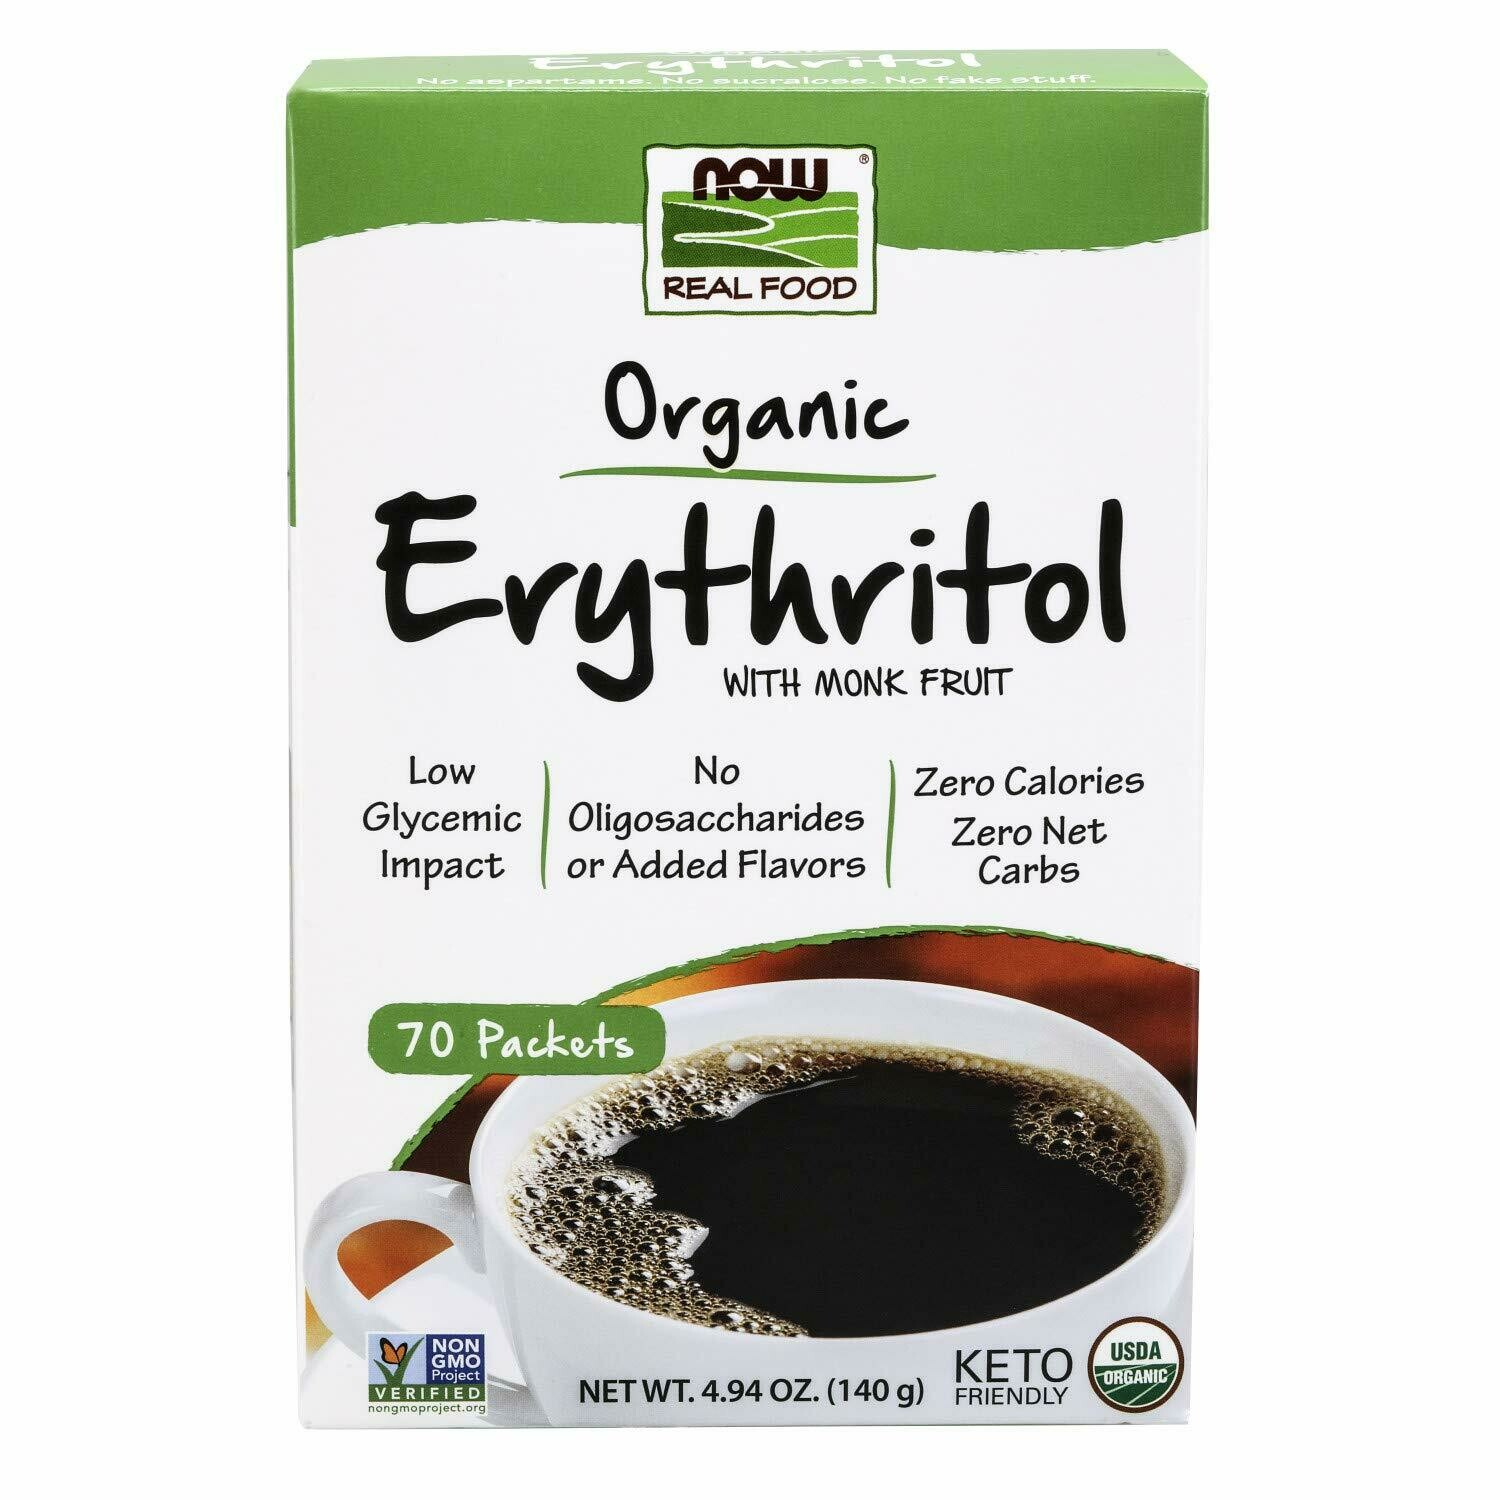 Now Real Food Organic Erythritol with Monk Fruit, 70 Packets